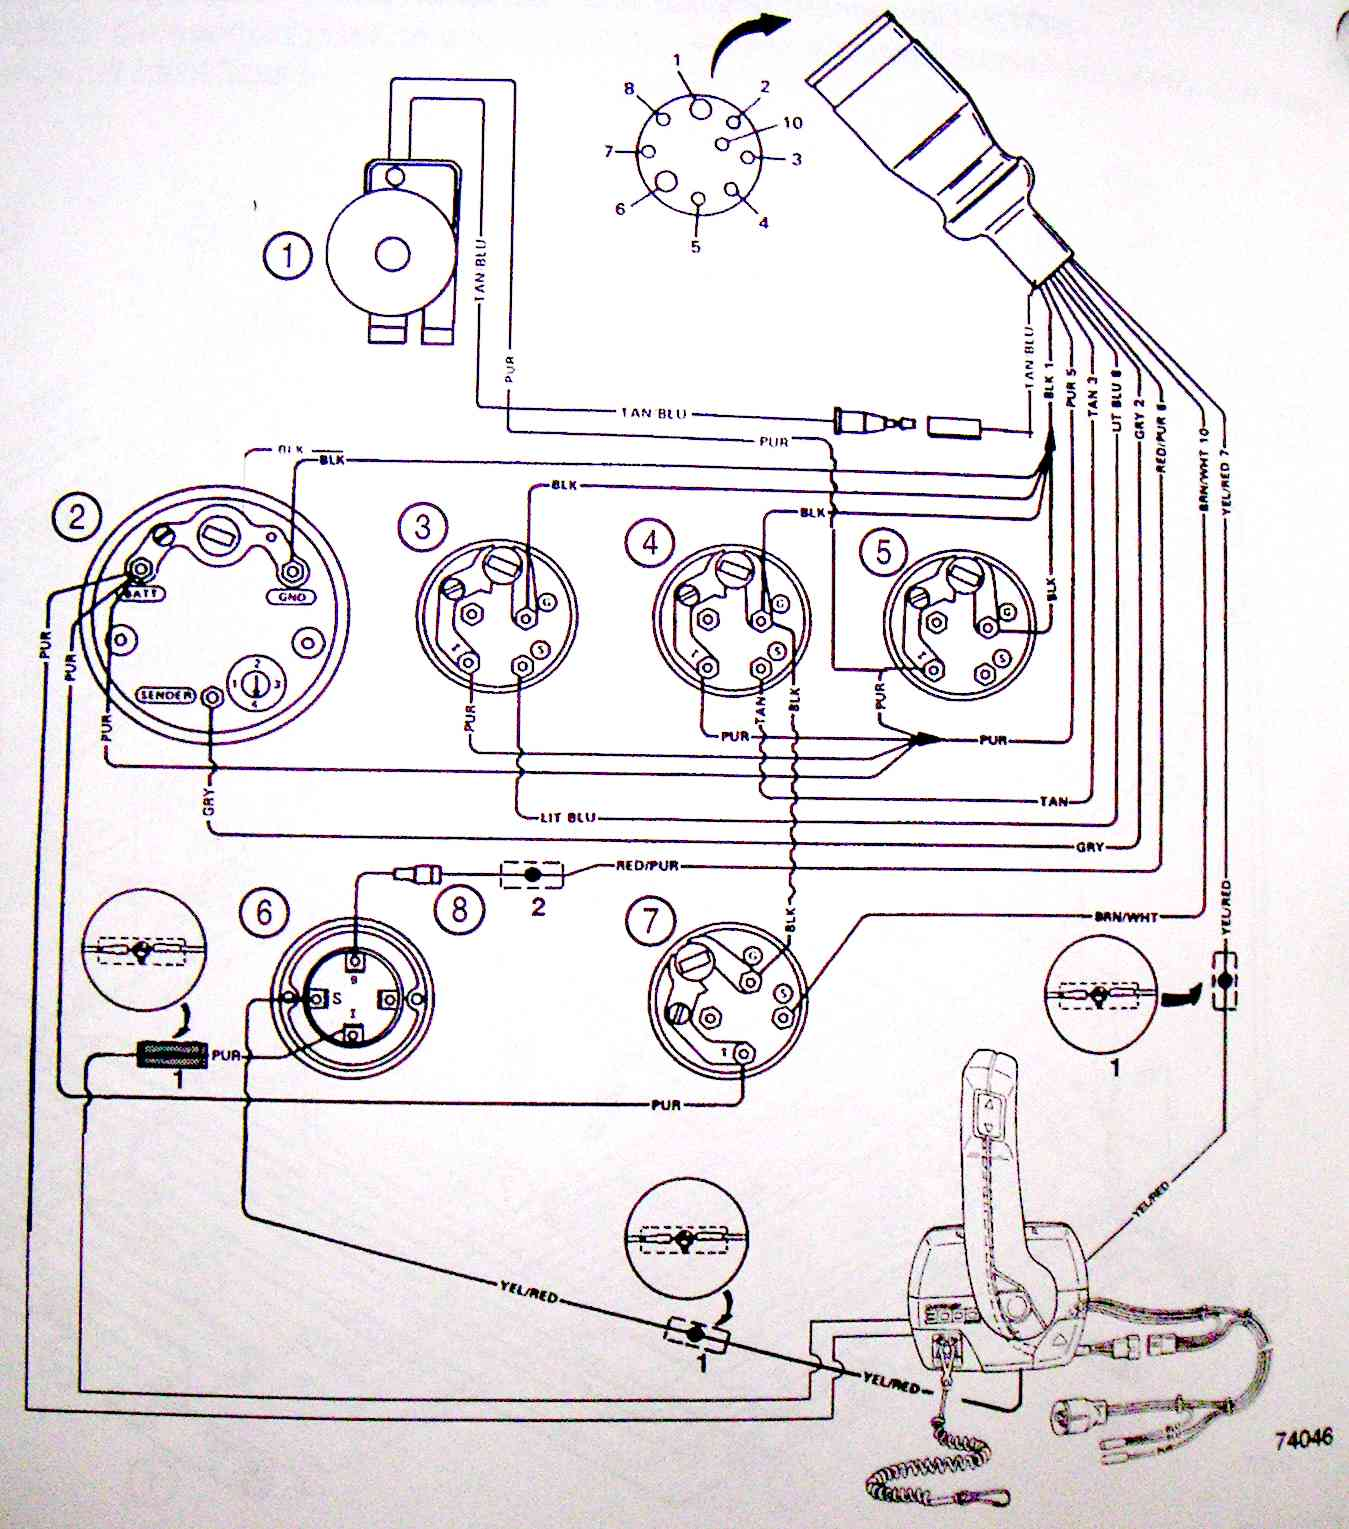 BoatHarness74046 yamaha outboard motor wiring diagrams the wiring diagram volvo penta wiring harness diagram at n-0.co